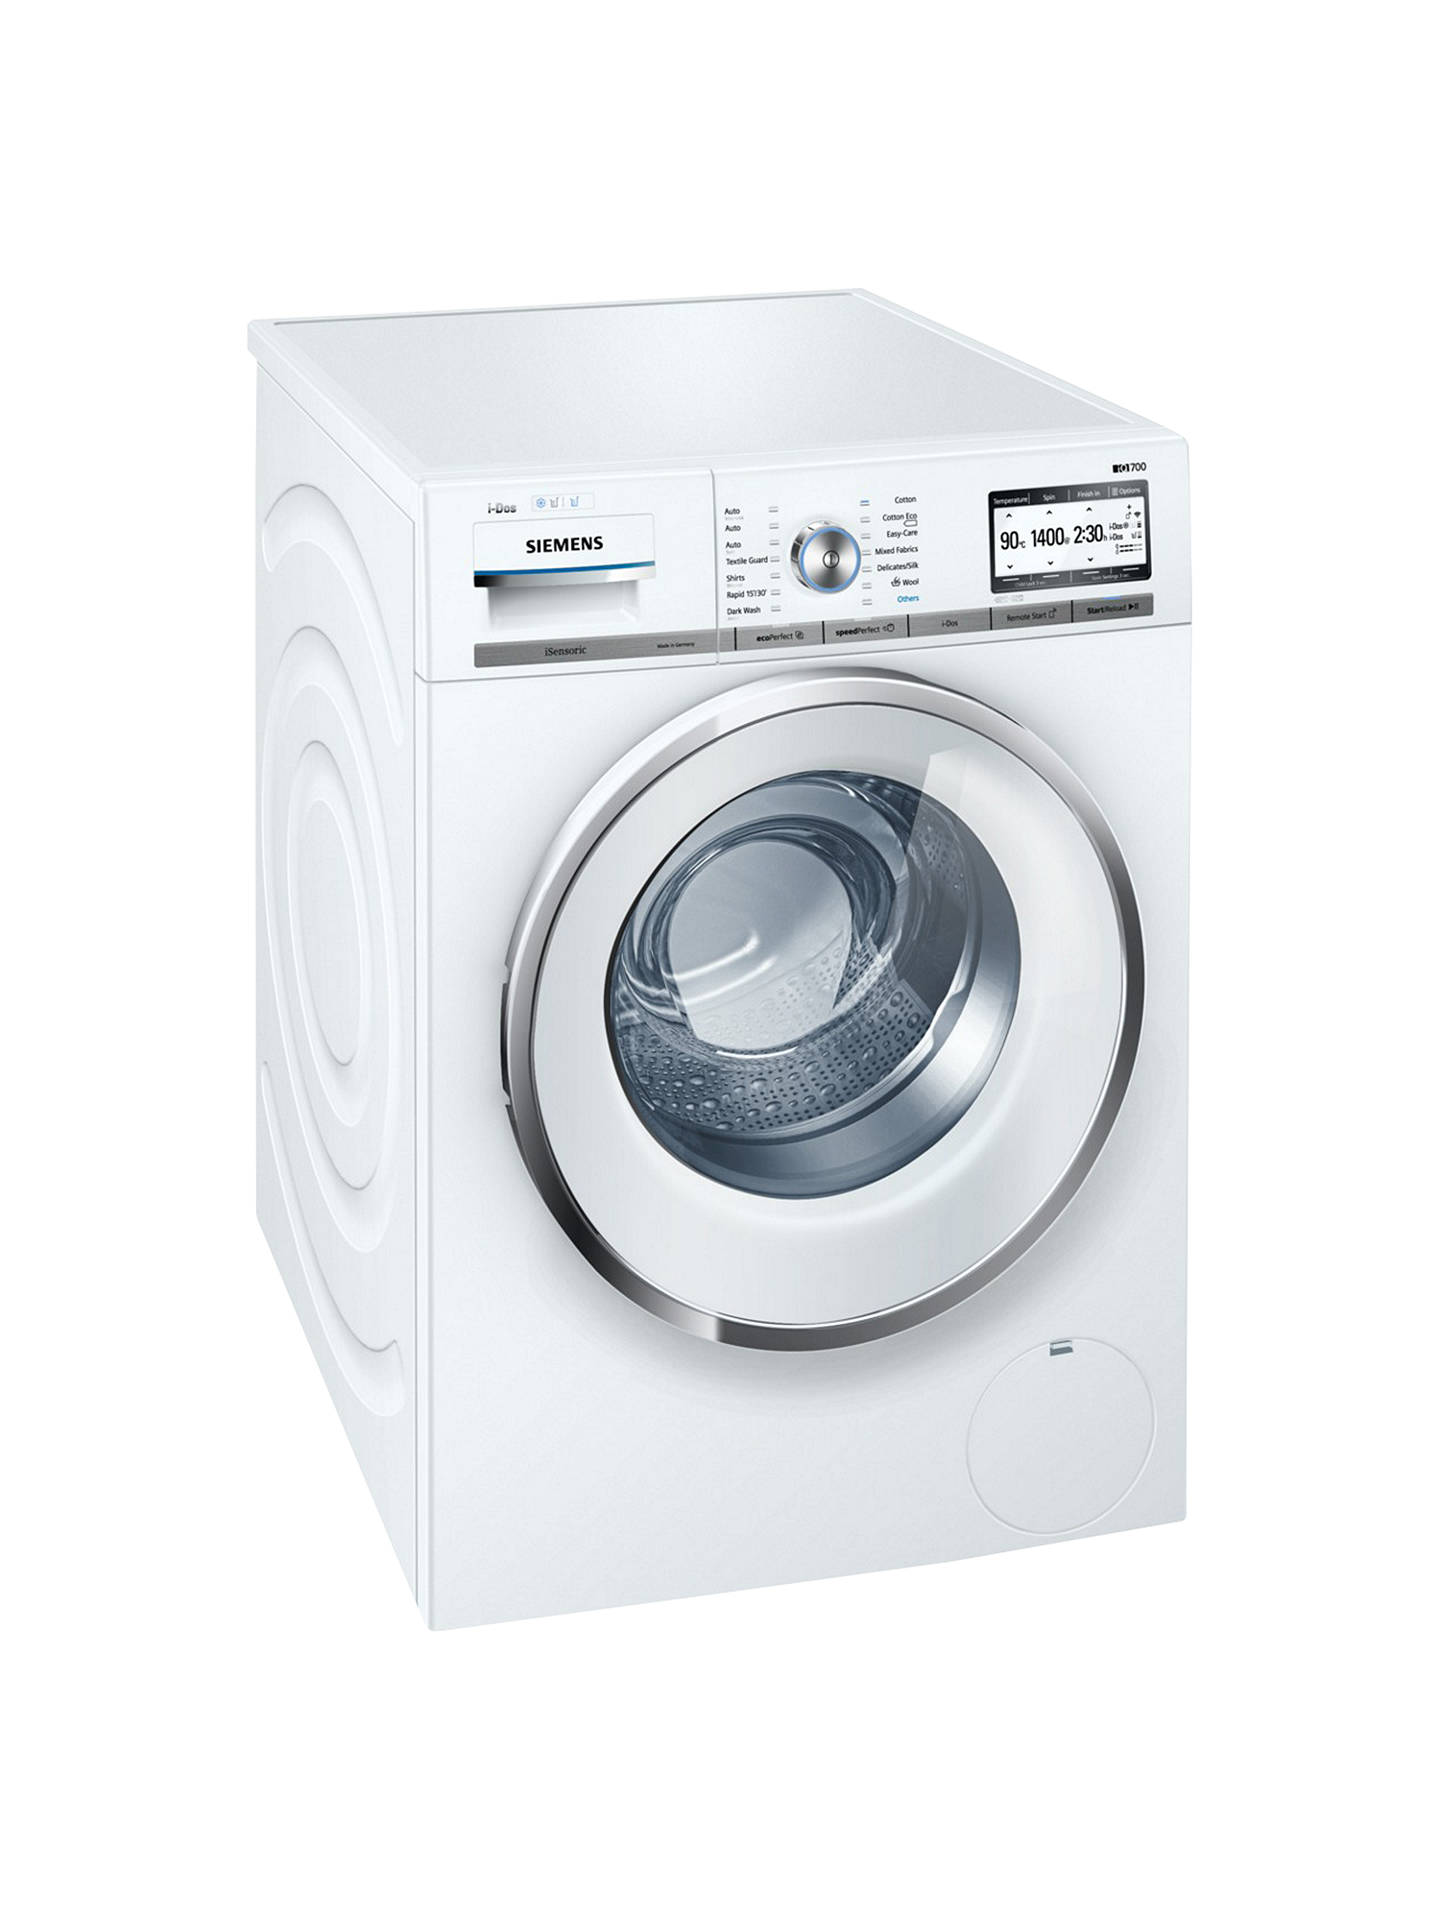 Siemens Iq700 Wmh4y890gb Freestanding Washing Machine With I Dos And